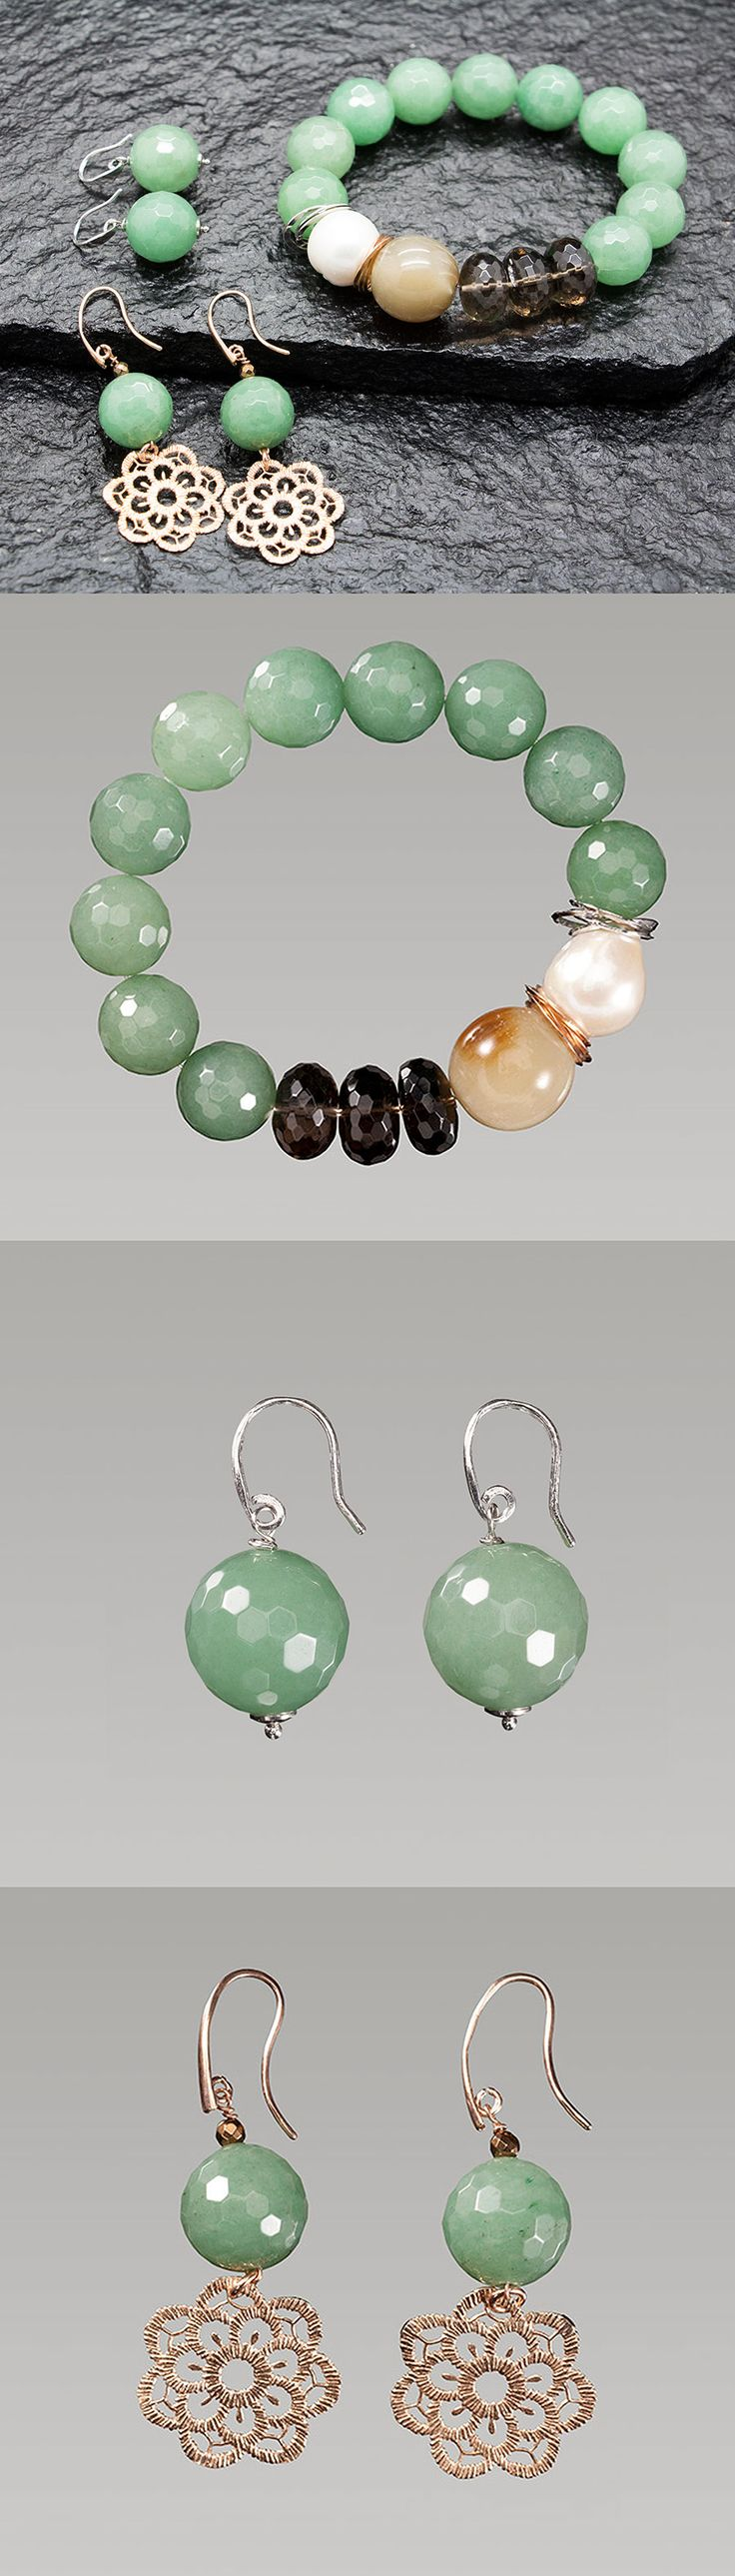 Wonderful green earrings and bracelet, handmade in Italy. All natural stones and pearls, Silver 925 without Nichel. Join on our website: http://www.antogioielli.it/